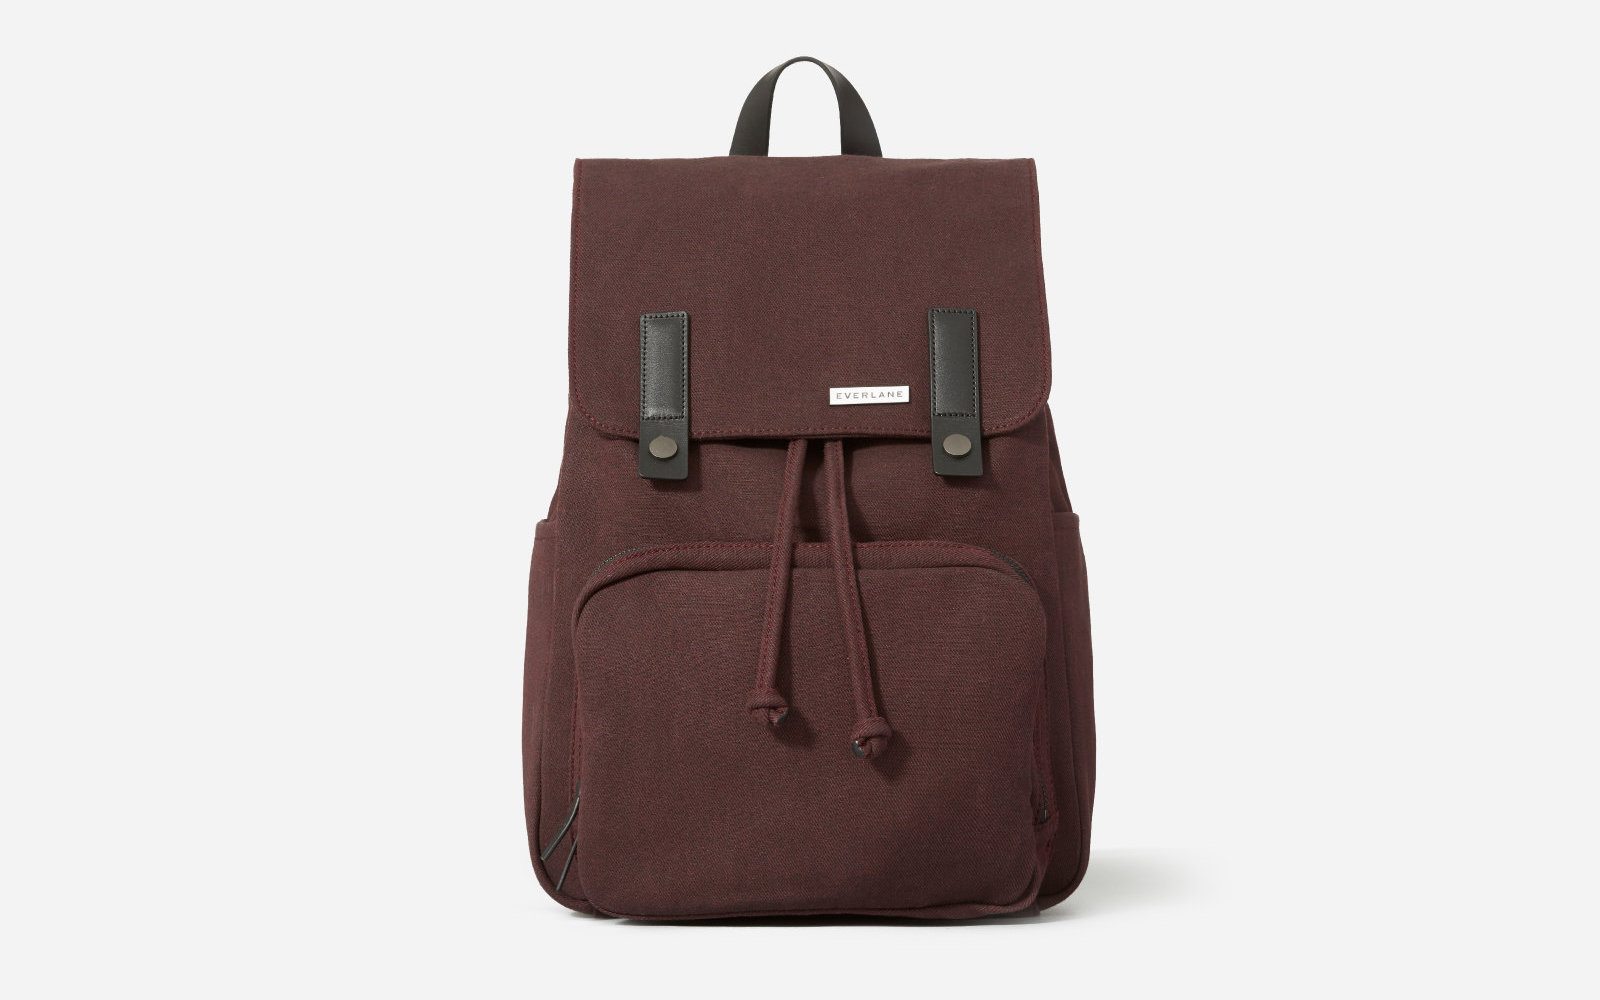 The Most Stylish Travel Backpacks For Women  8fe85855e2ed4